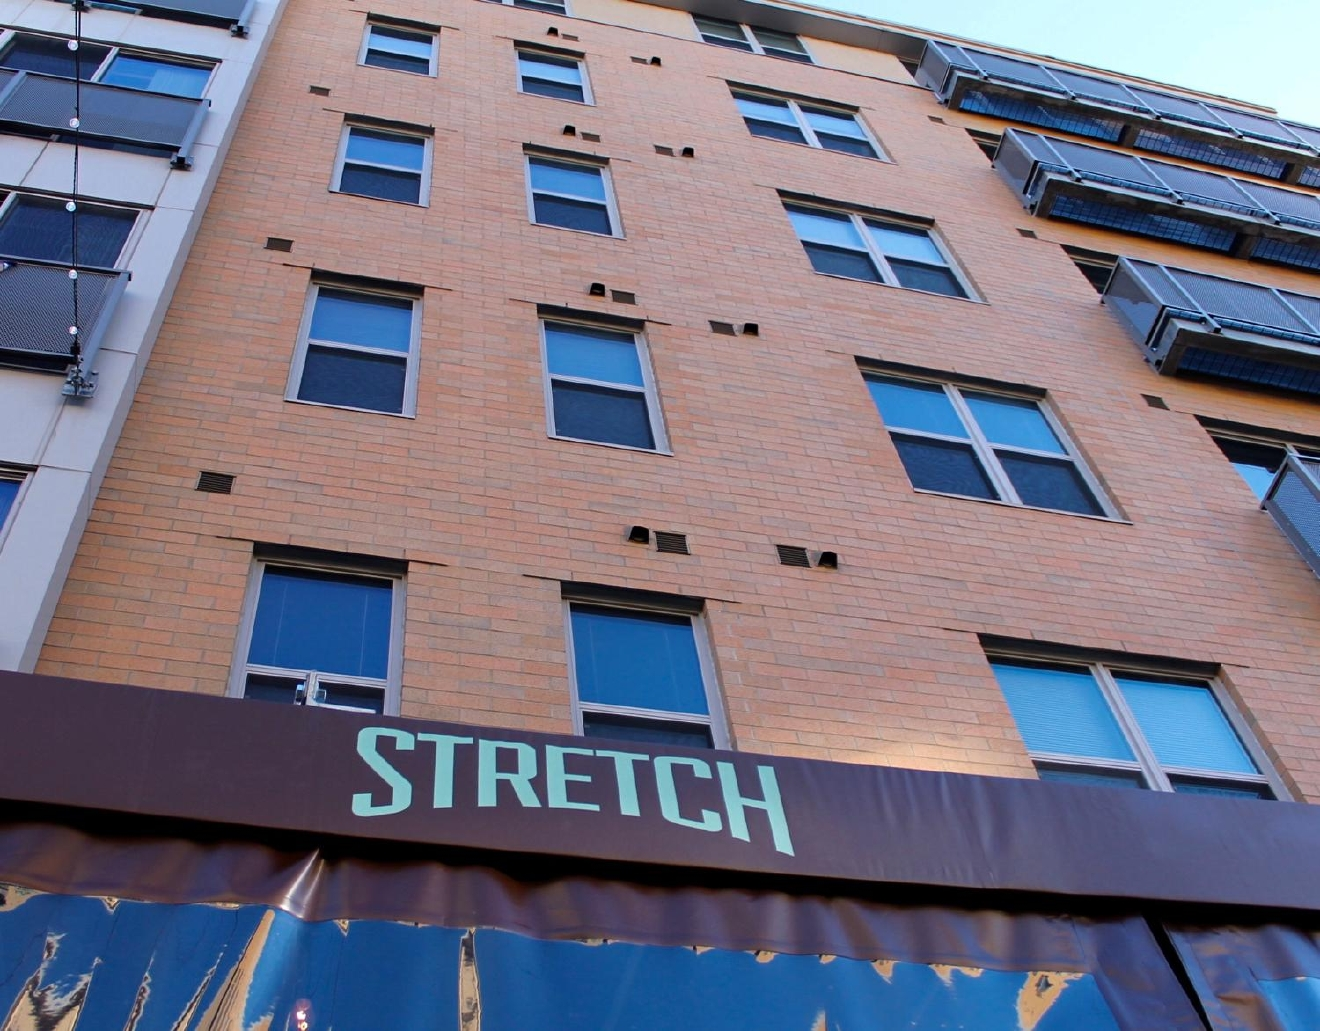 The Stretch, a 4EG-owned establishment, features a 28 tap system with 12 beers on draft, 8 draft cocktails, and 4 wines on tap. The Stretch is located at the Banks . ADDRESS: 191 E Freedom Way (45202). / Image: Rose Brewington // Published: 1.14.17